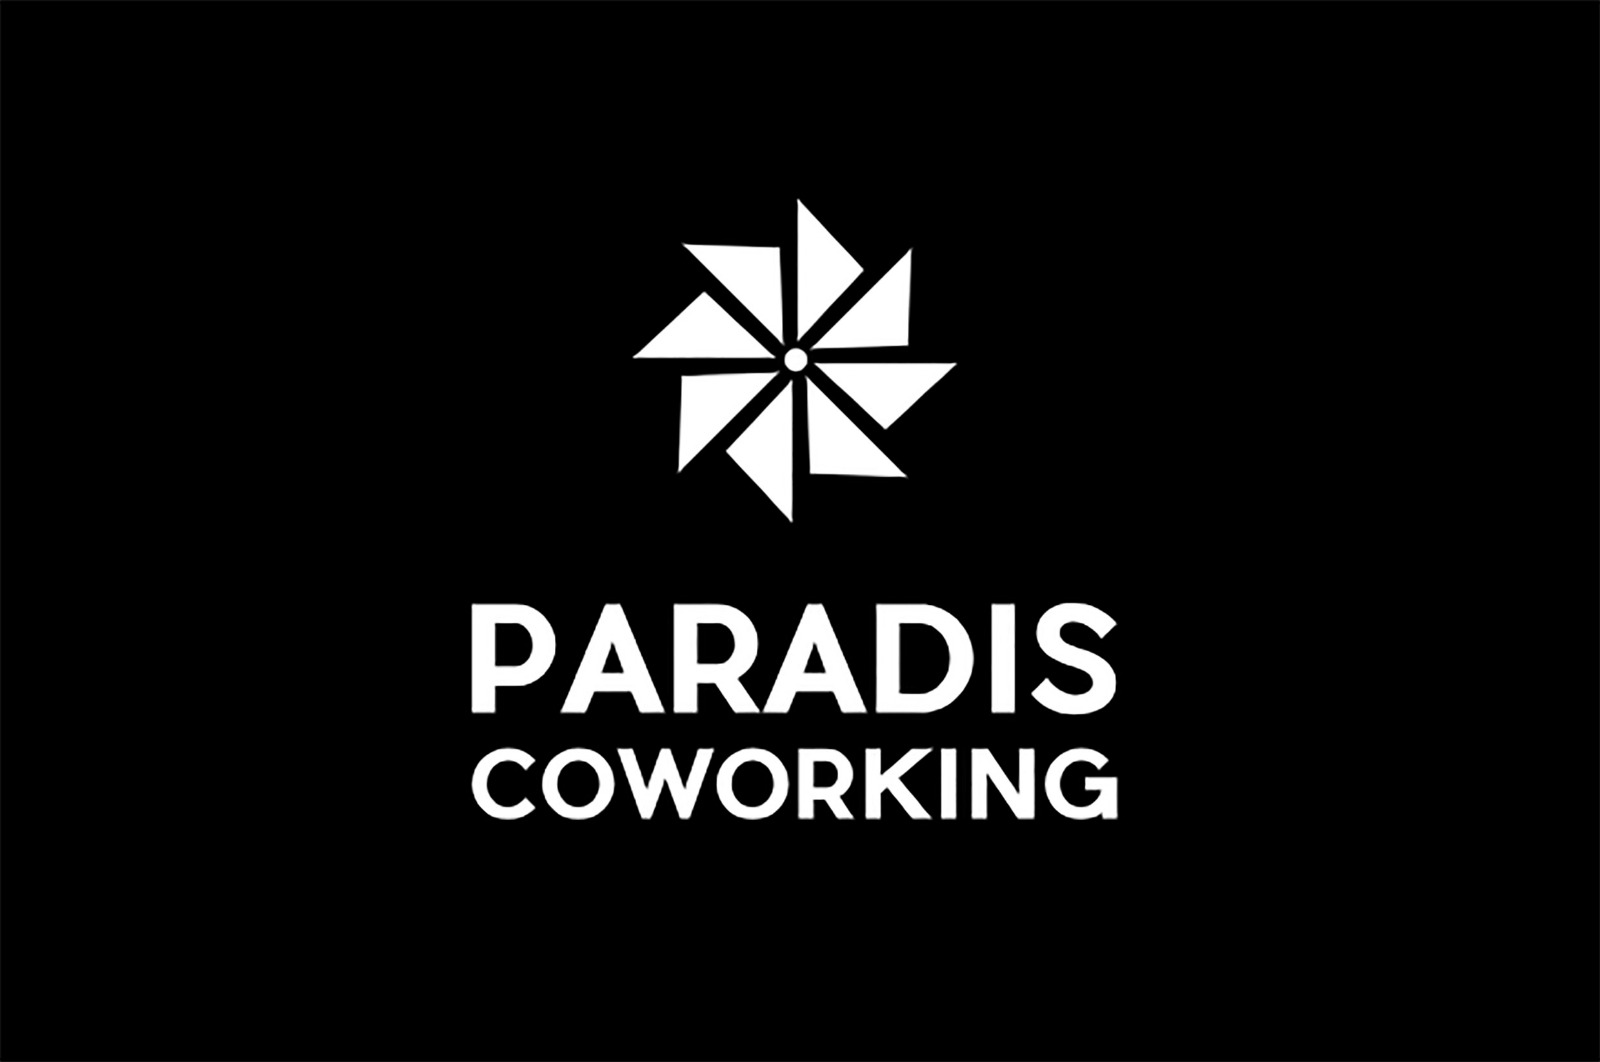 Paradis coworking